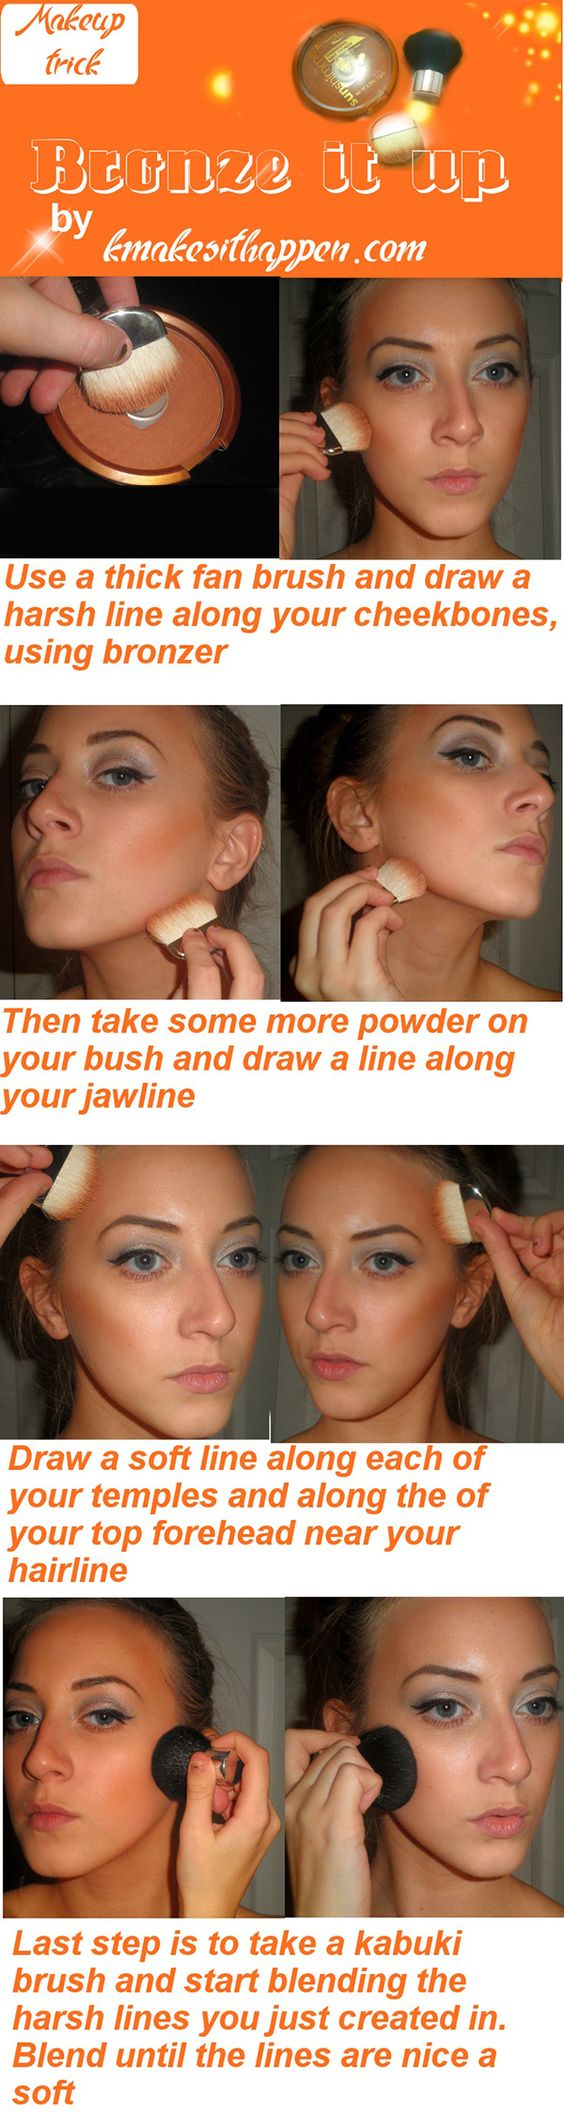 how to apply bronzer tips